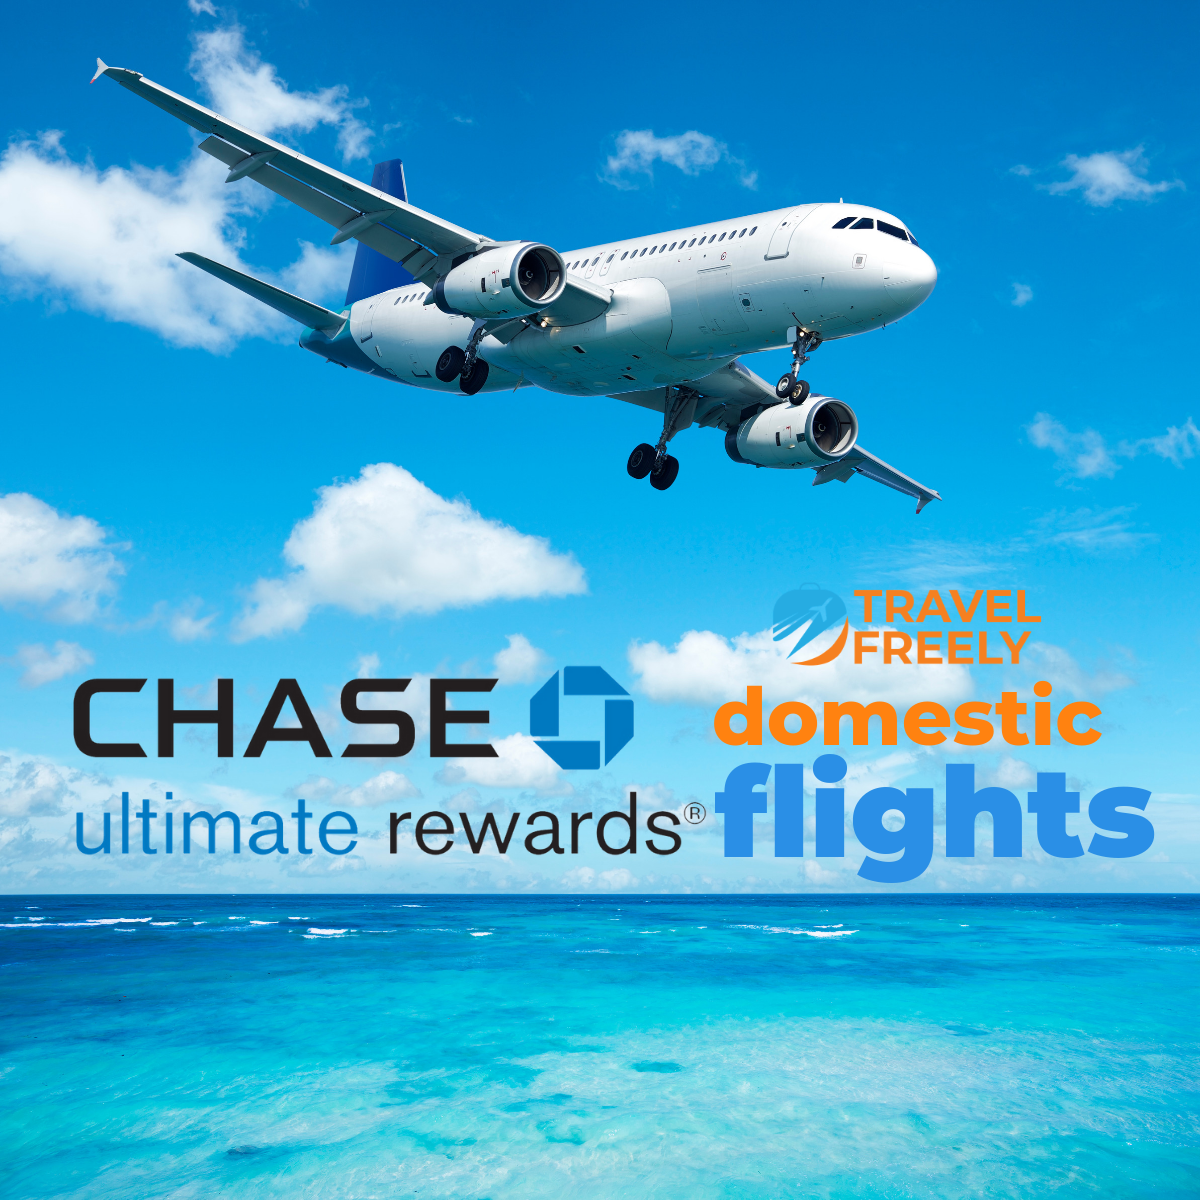 One final way to get decent value out of Chase points is to